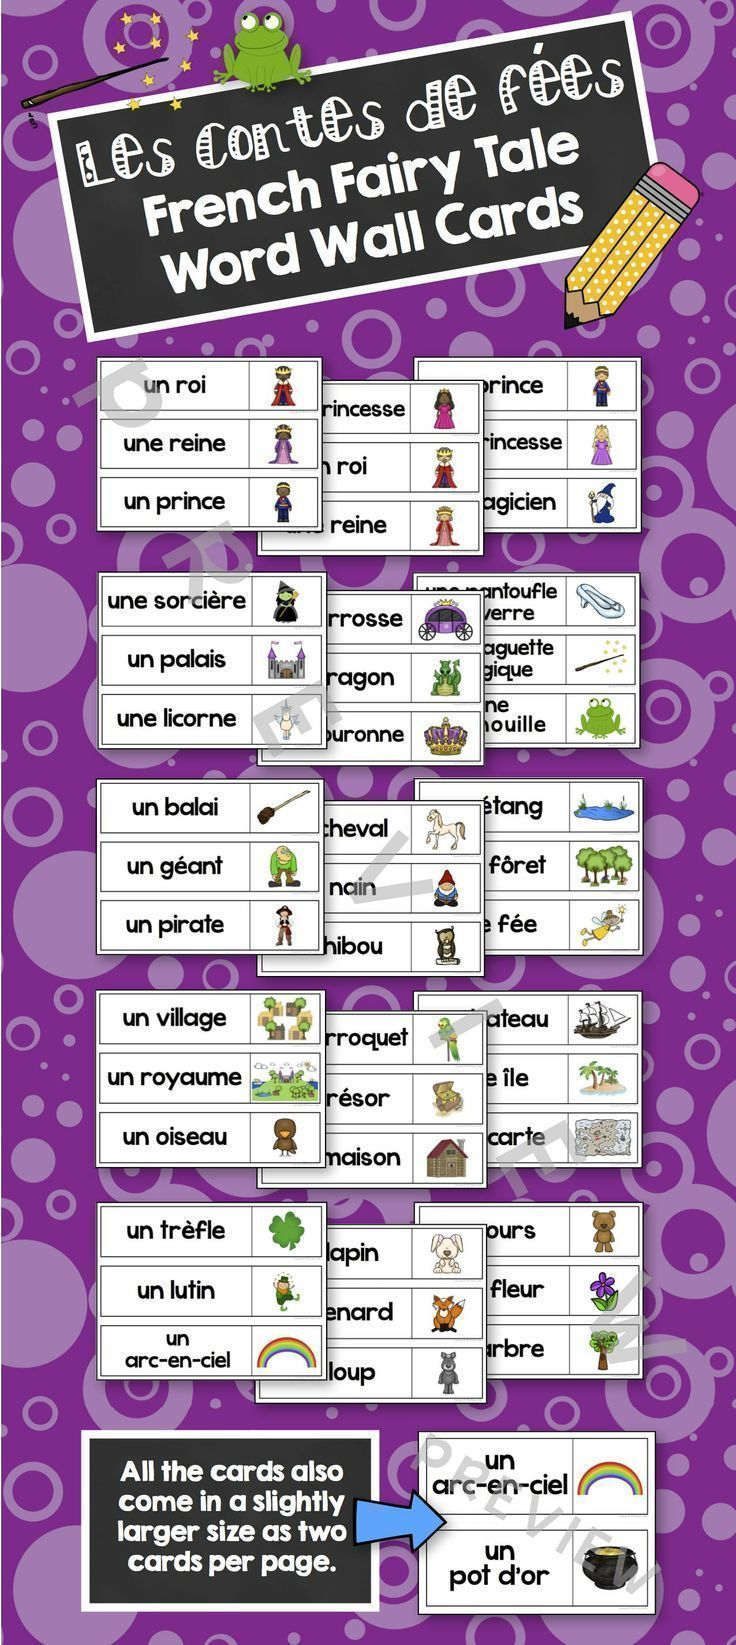 Now updated with a dictionary picture/handout your students will love! Includes 48 fairy tale vocabulary words with vibrant illustrations. These cards come in two sizes: 3 per letter sized page or 2 per page.